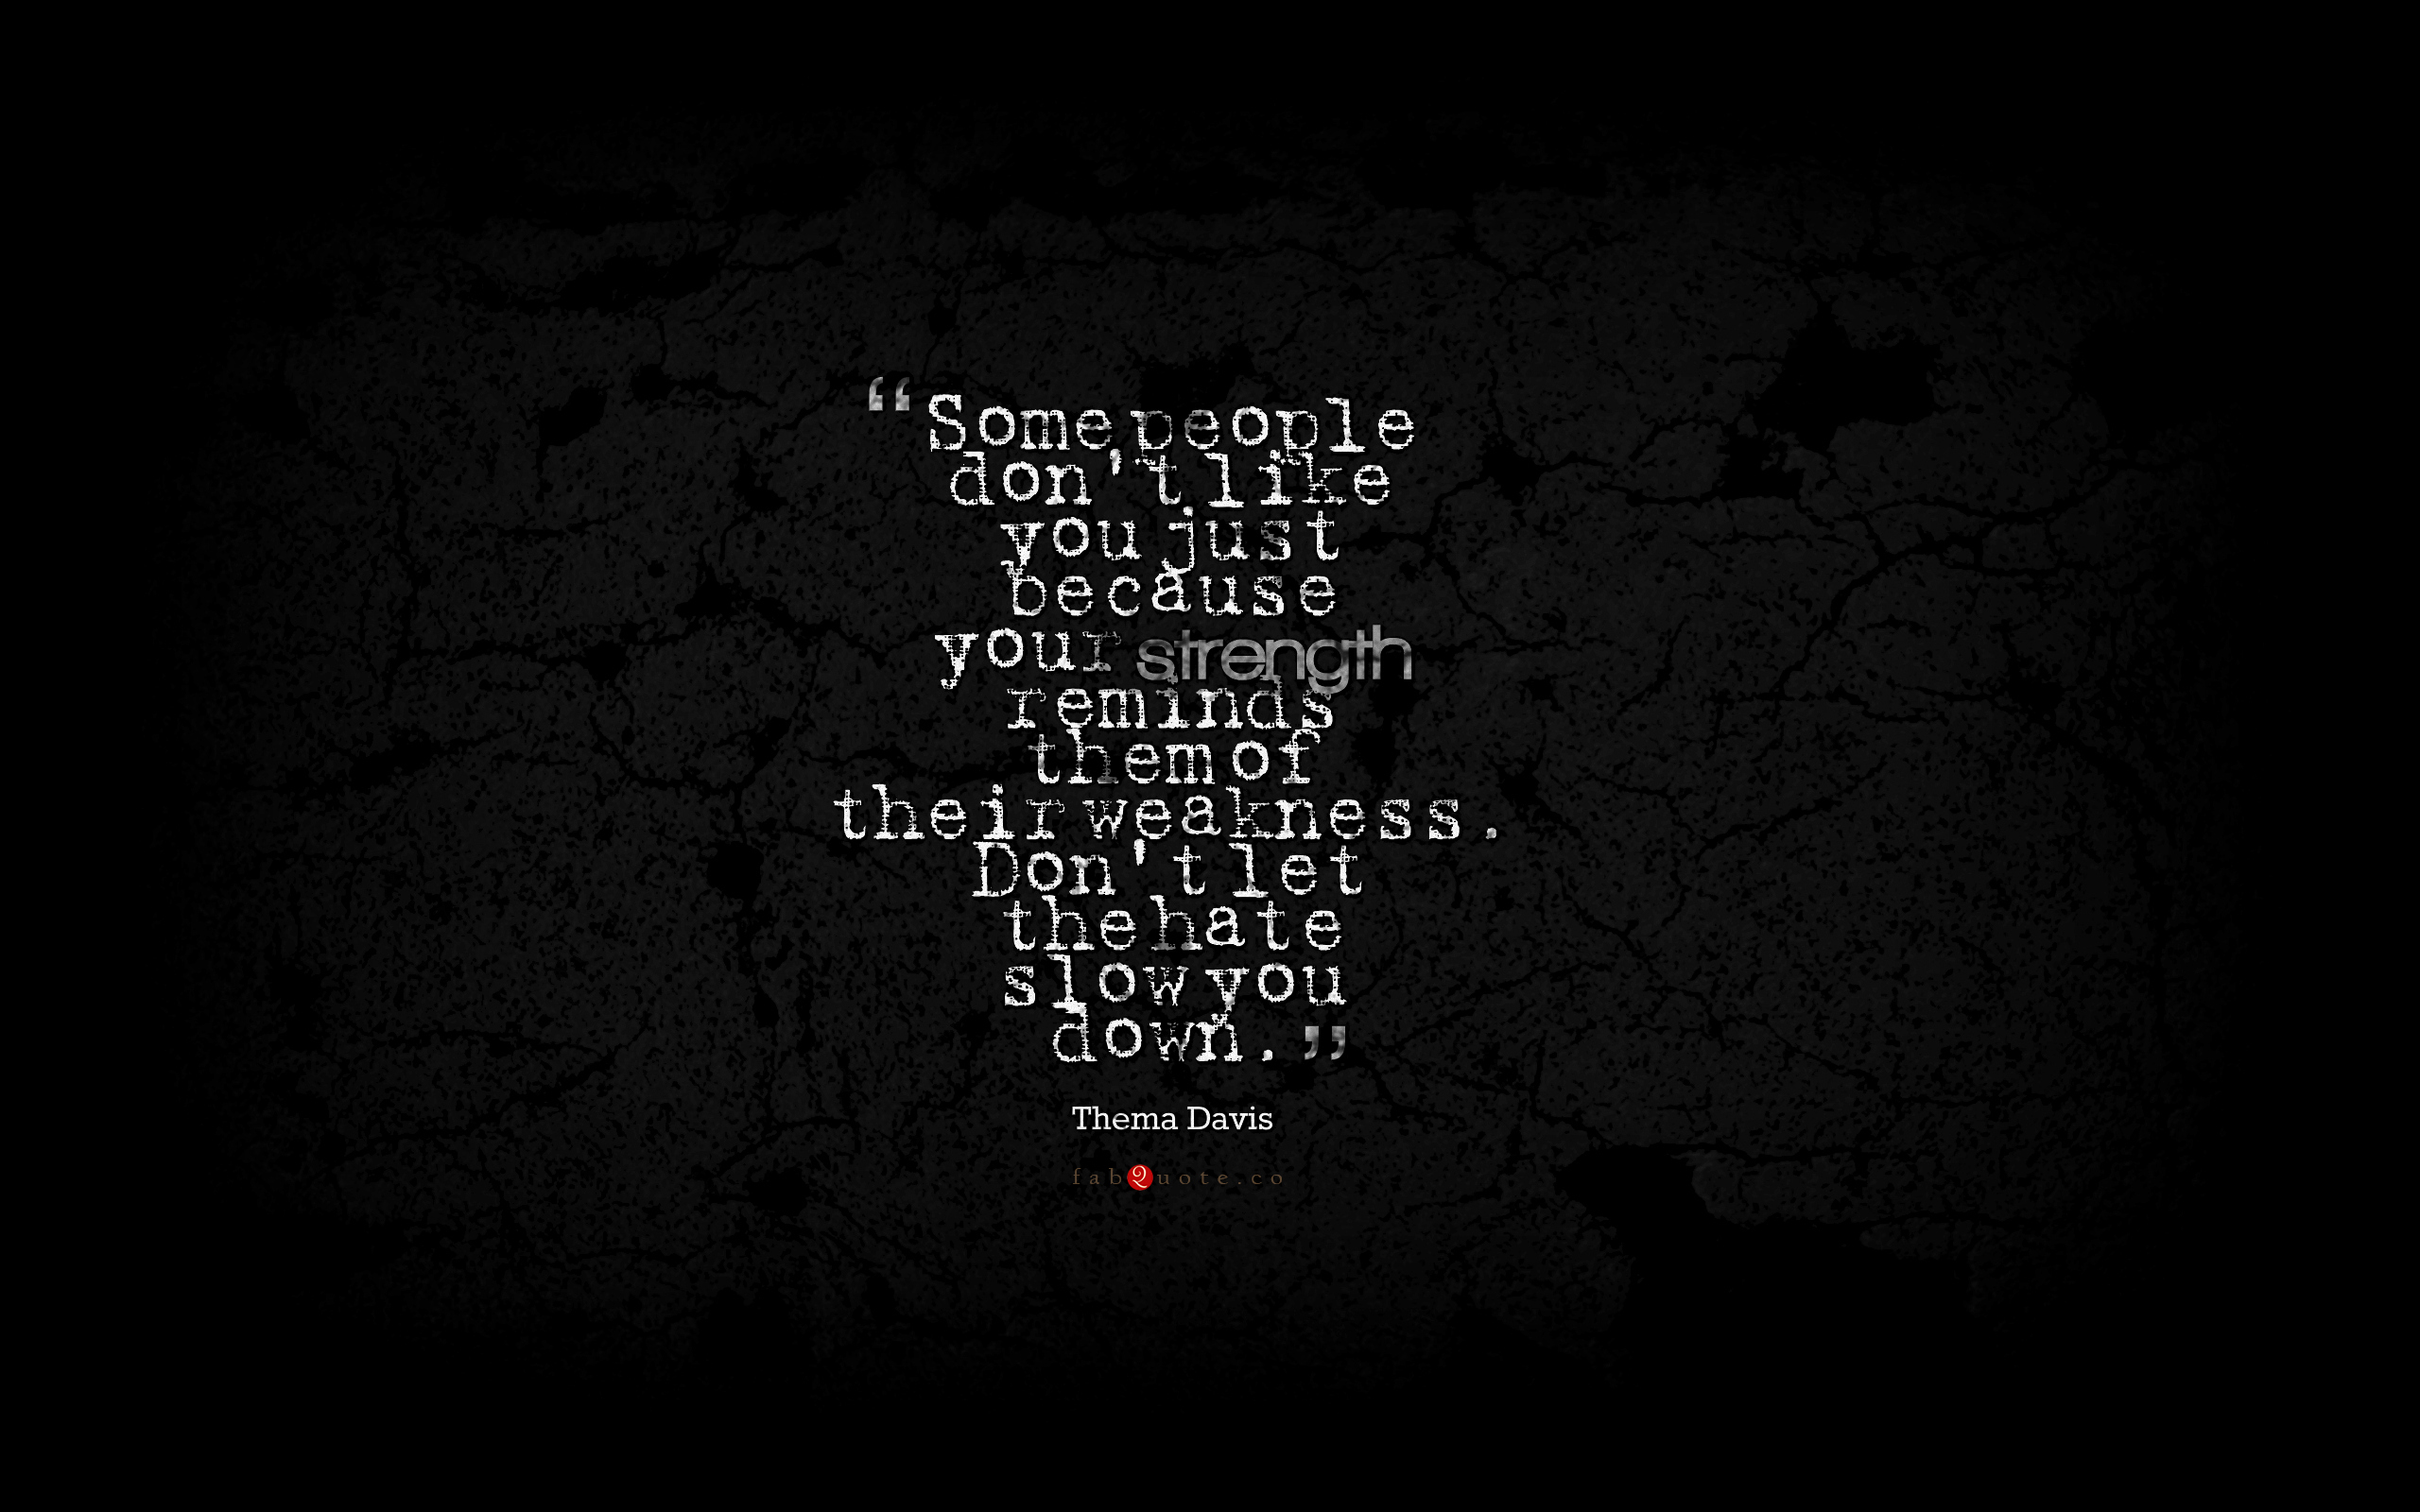 Thema Davis Quote about Strength and Weakness widescreen wallpaper 2560x1600